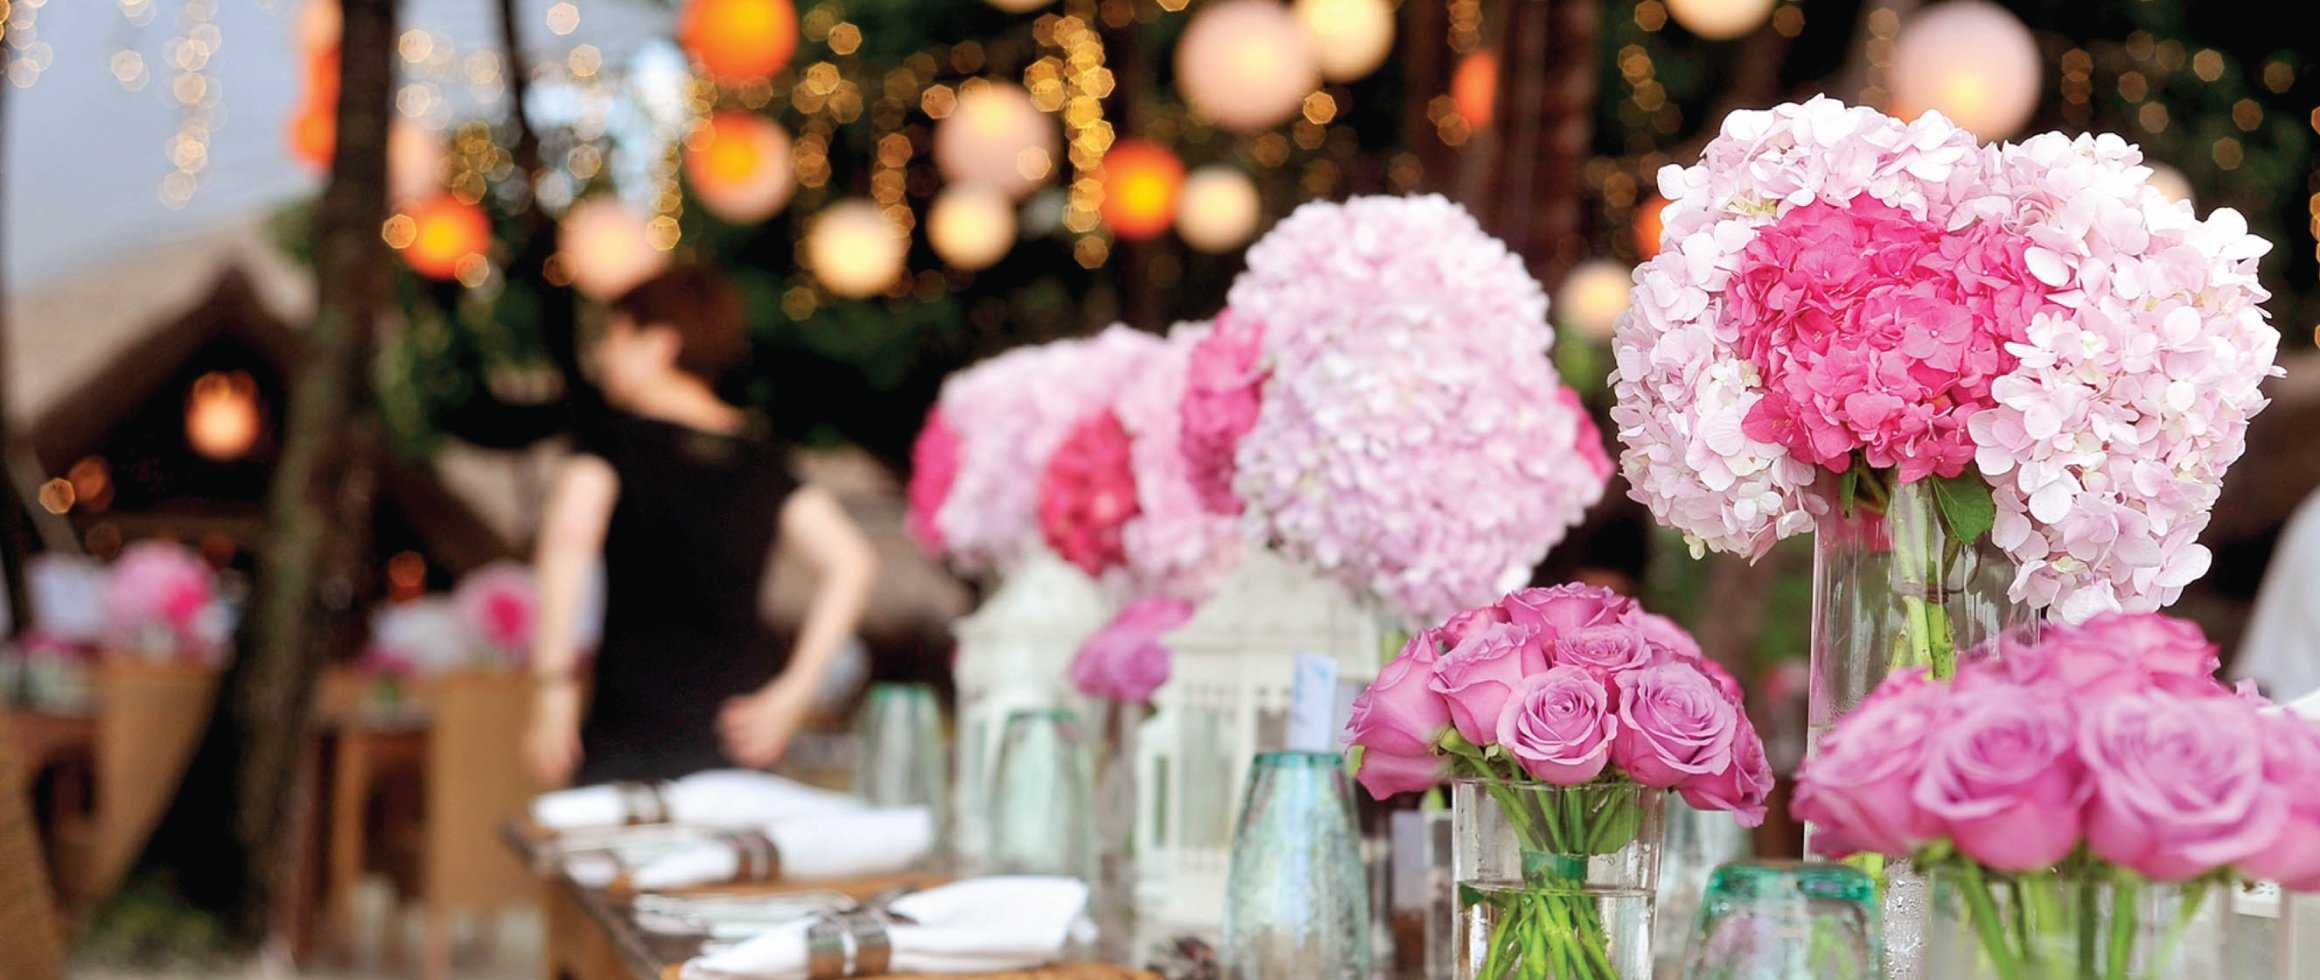 5 foolproof tips on creating conversations during formal events.